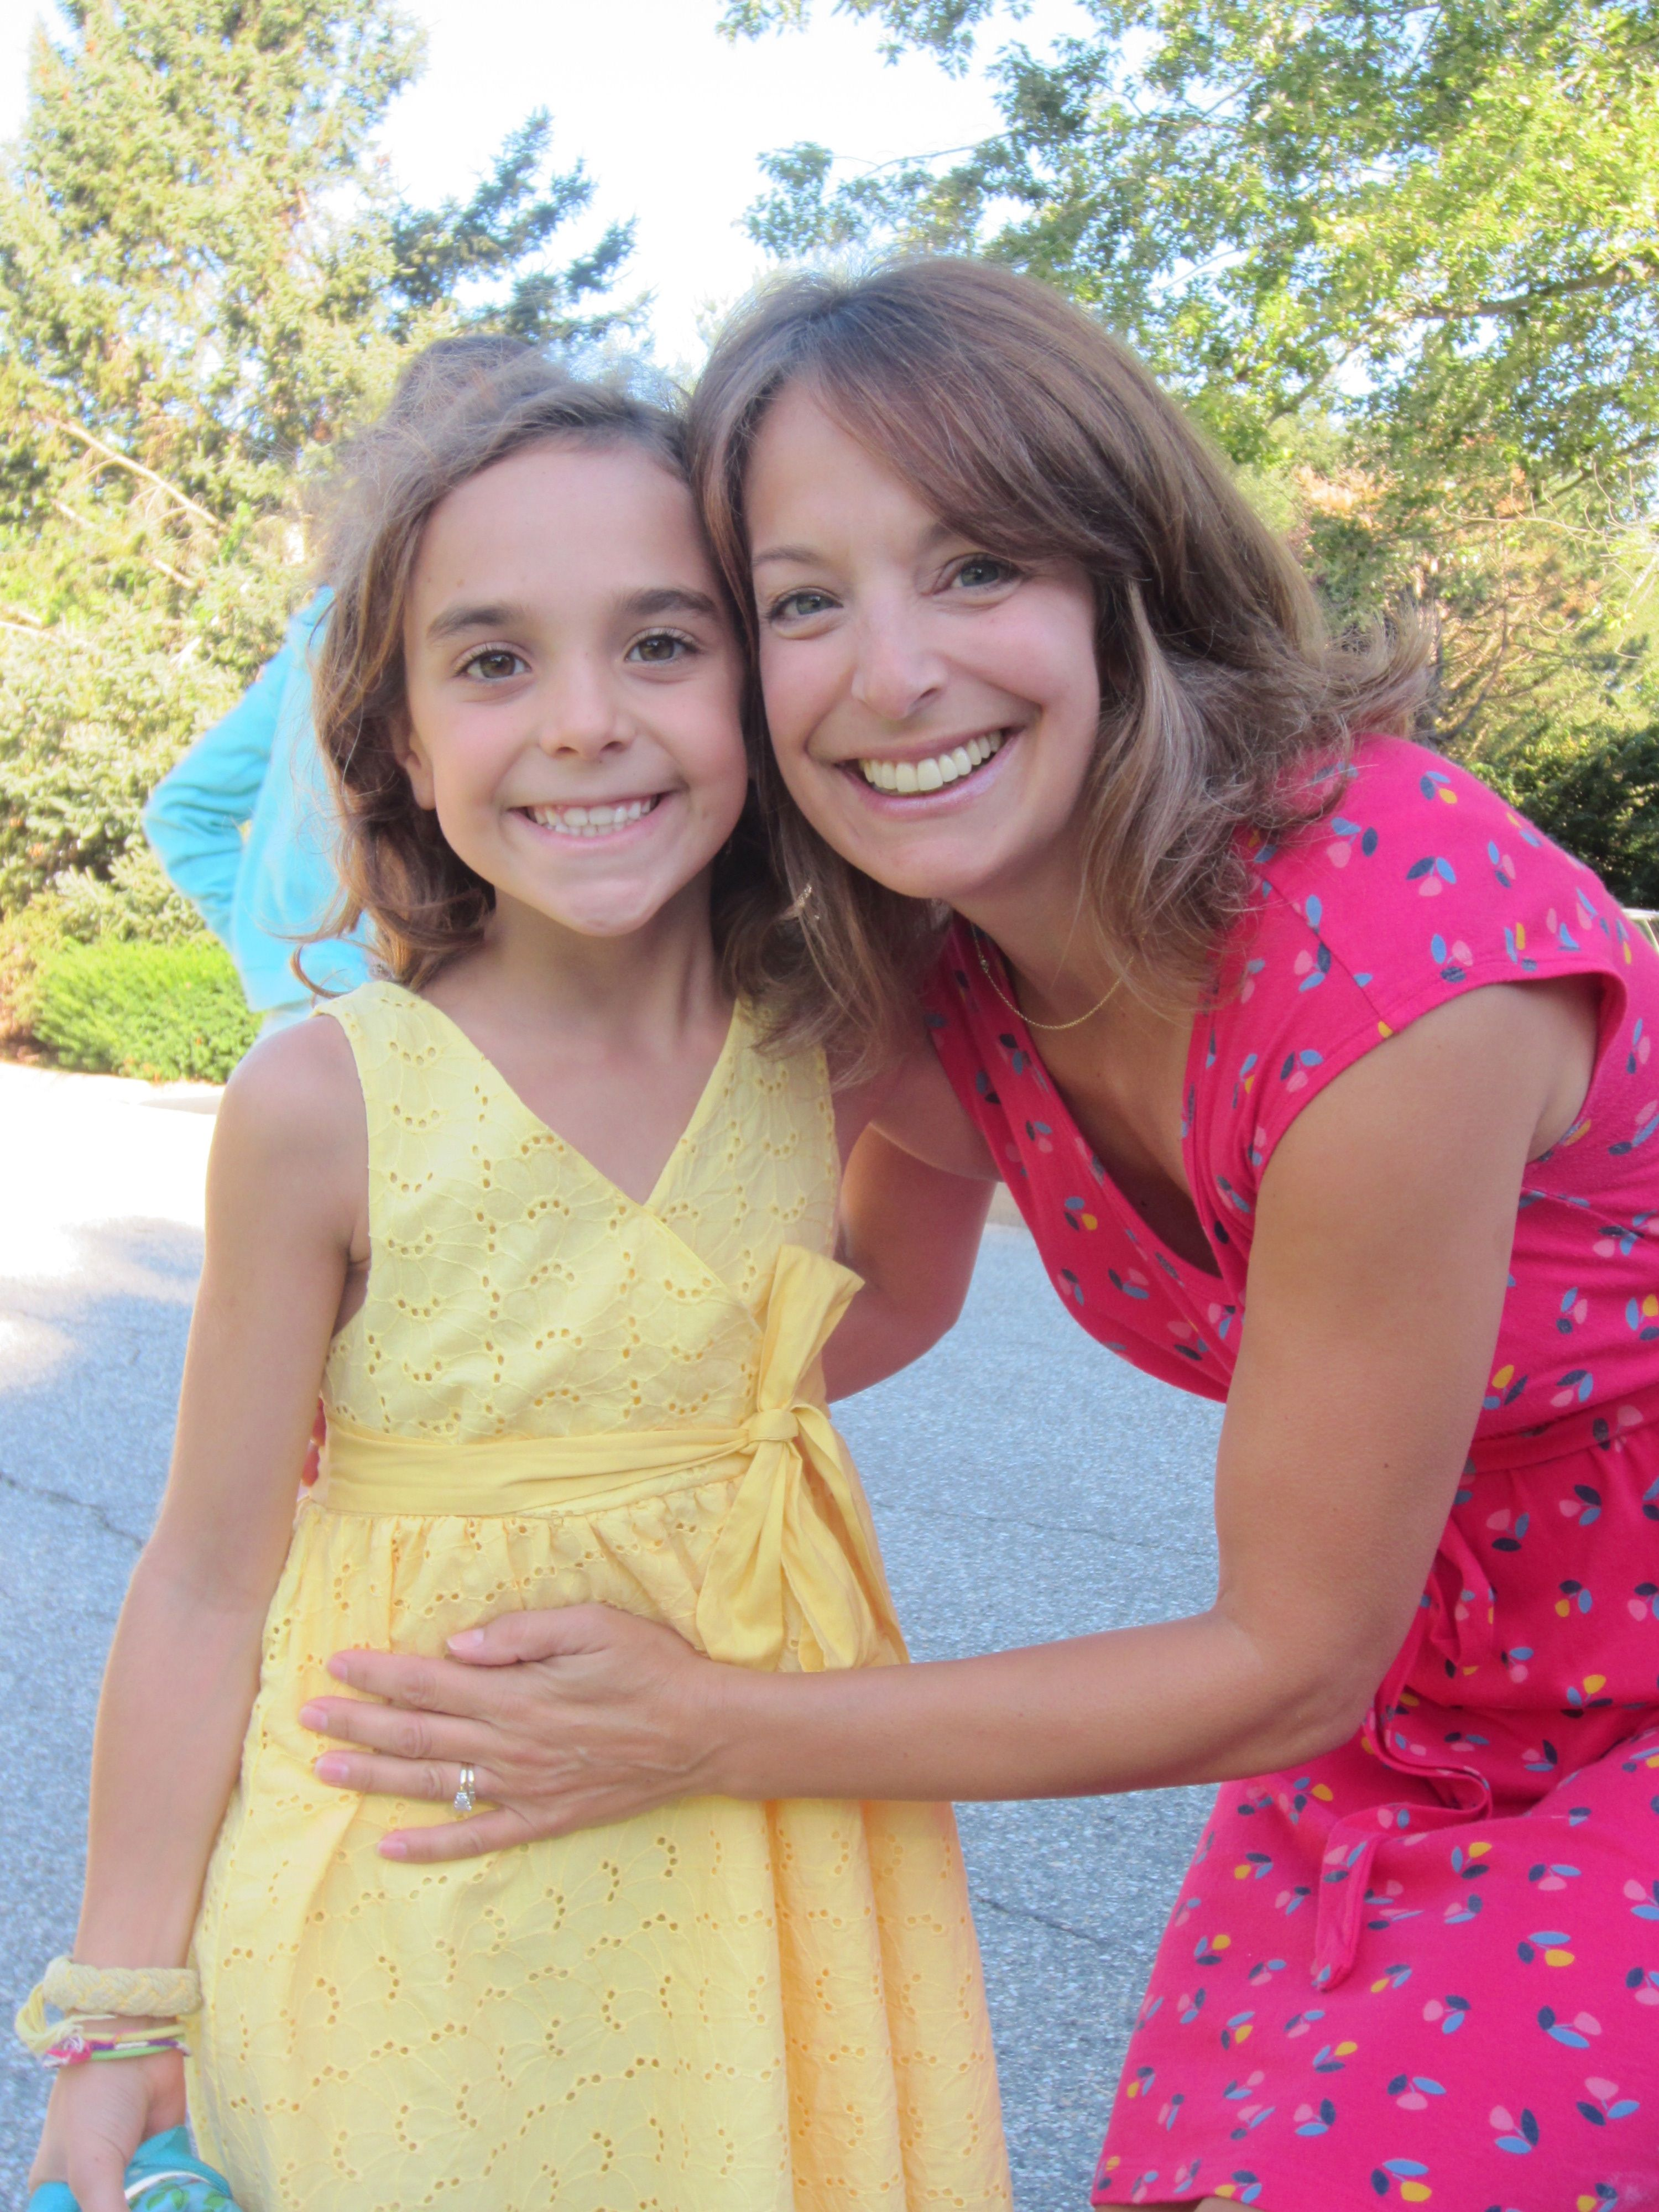 Pin by Kids & Parenting on Parenting Tips  Mom dress, Mothers